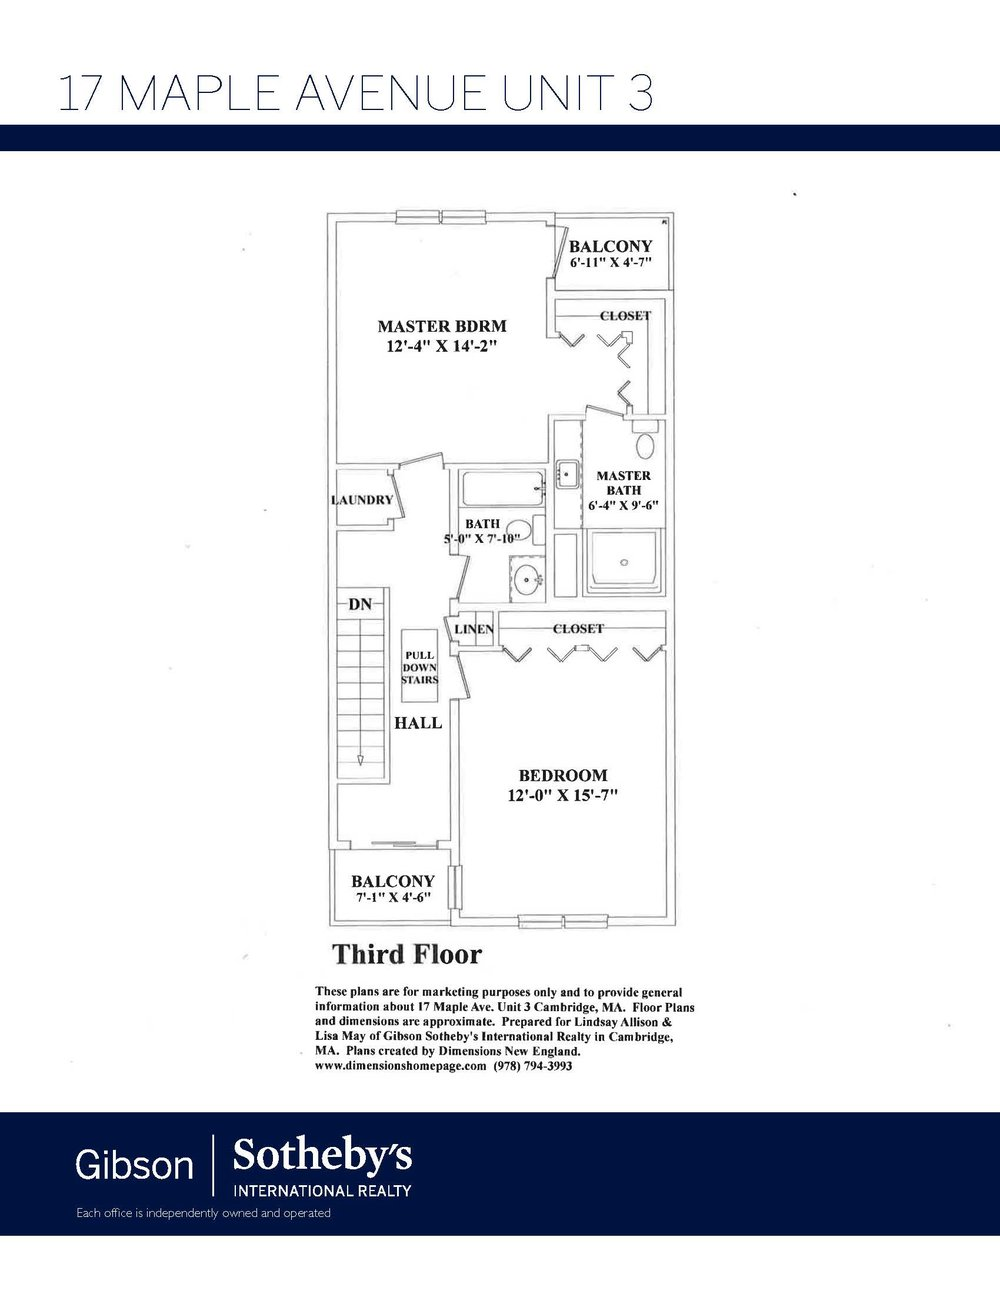 17 Maple Ave U3 Floor Plans Branded_Page_2.jpg